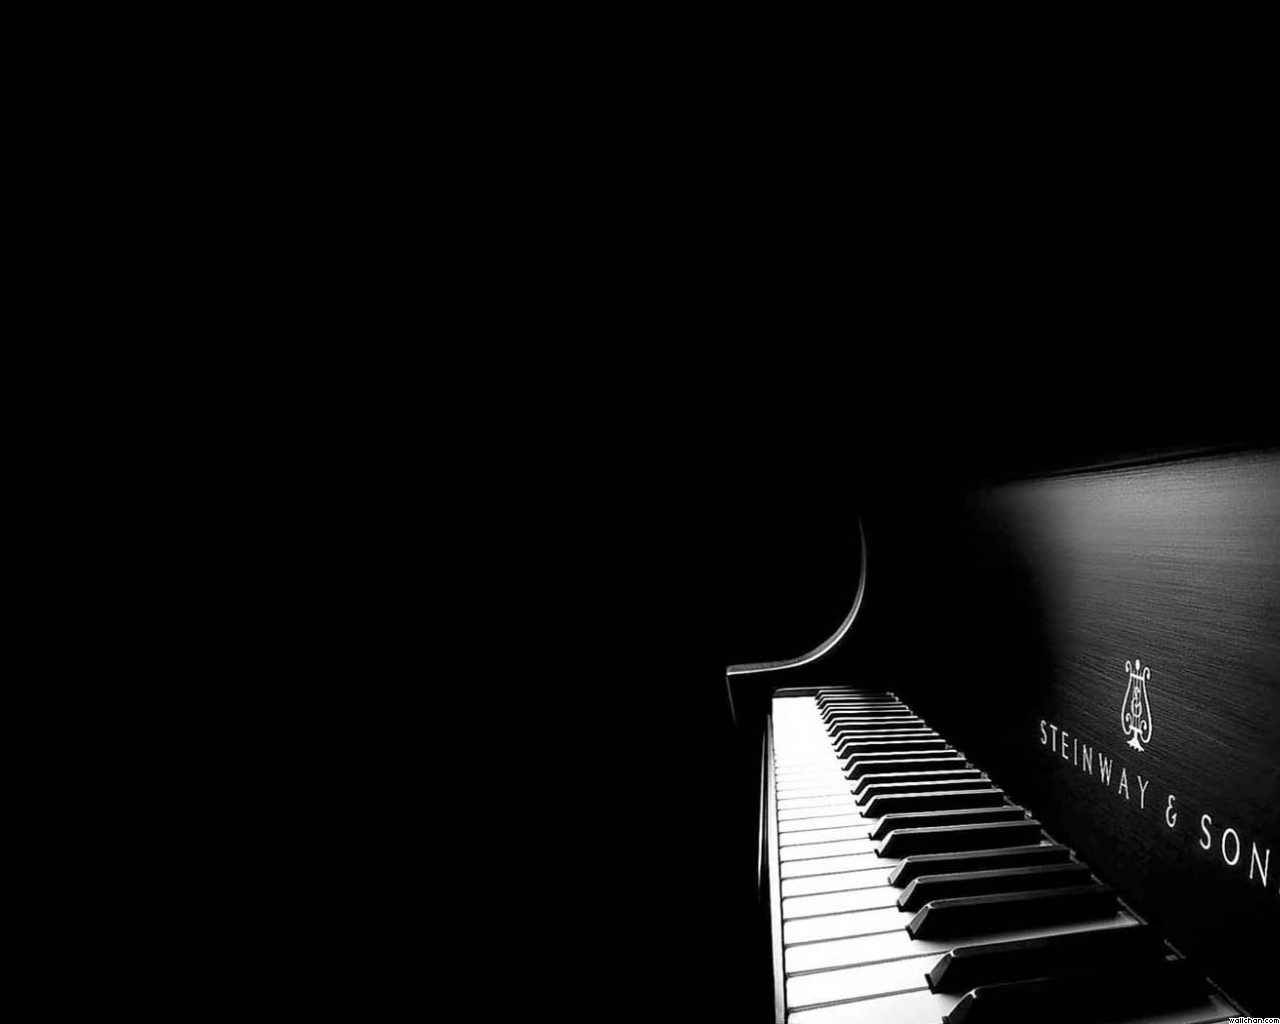 Download Wallpaper Music Photography - music-wallpaper-6445-6639-hd-wallpapers  Pictures_139766.jpg